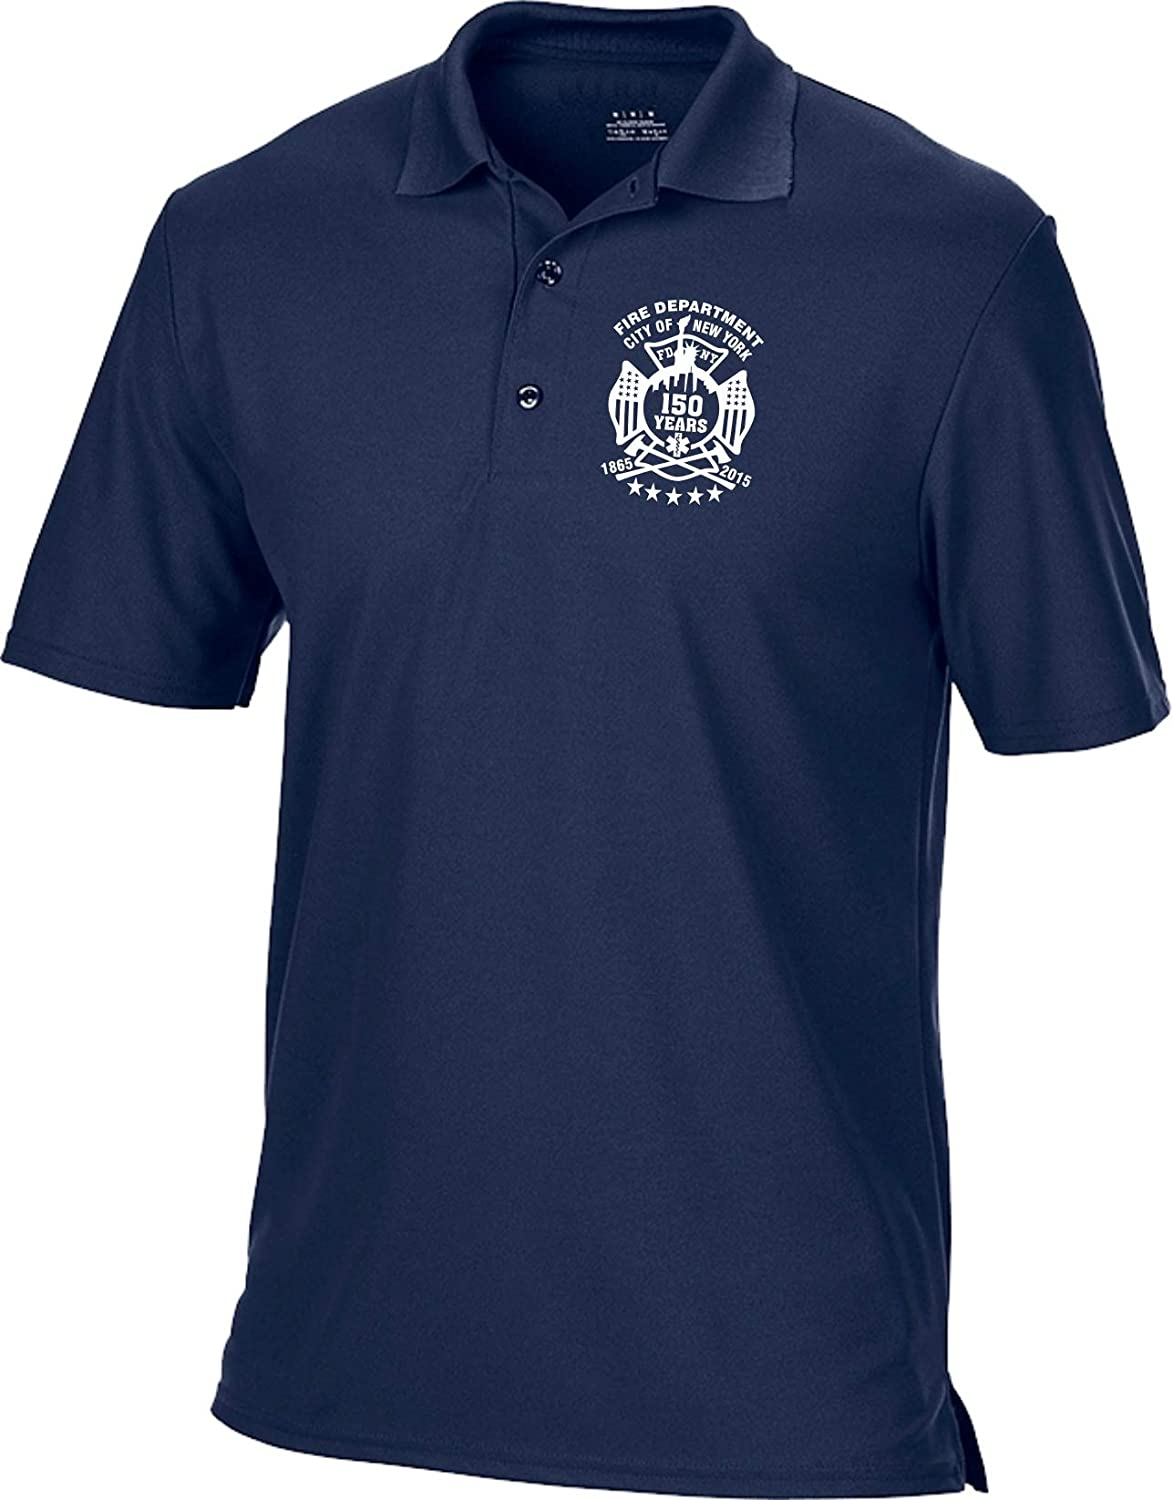 feuer1 Funktions-Poloshirt Navy FDNY 150 Years 1865-2015